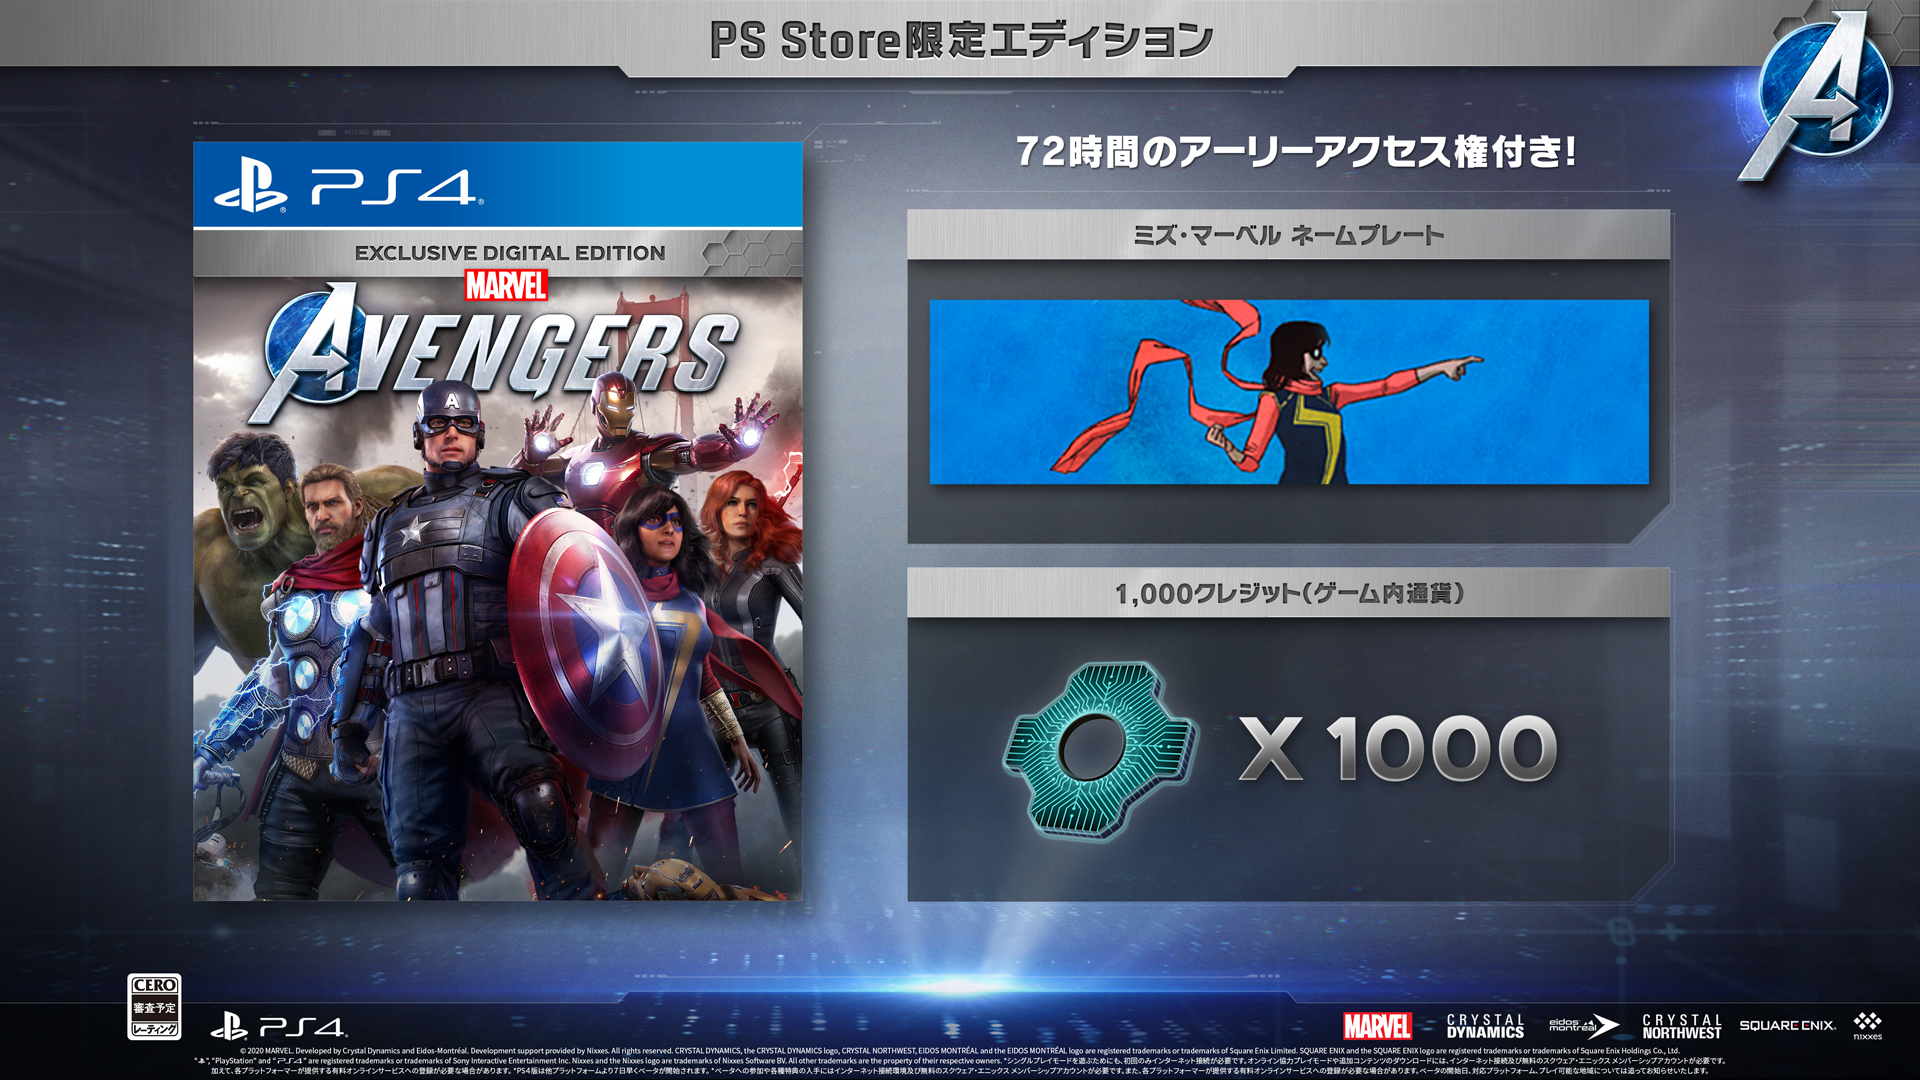 PSストア限定エディション C)2020 MARVEL. Developed by Crystal Dynamics and Eidos Montréal. Development support provided by Nixxes. All rights reserved.